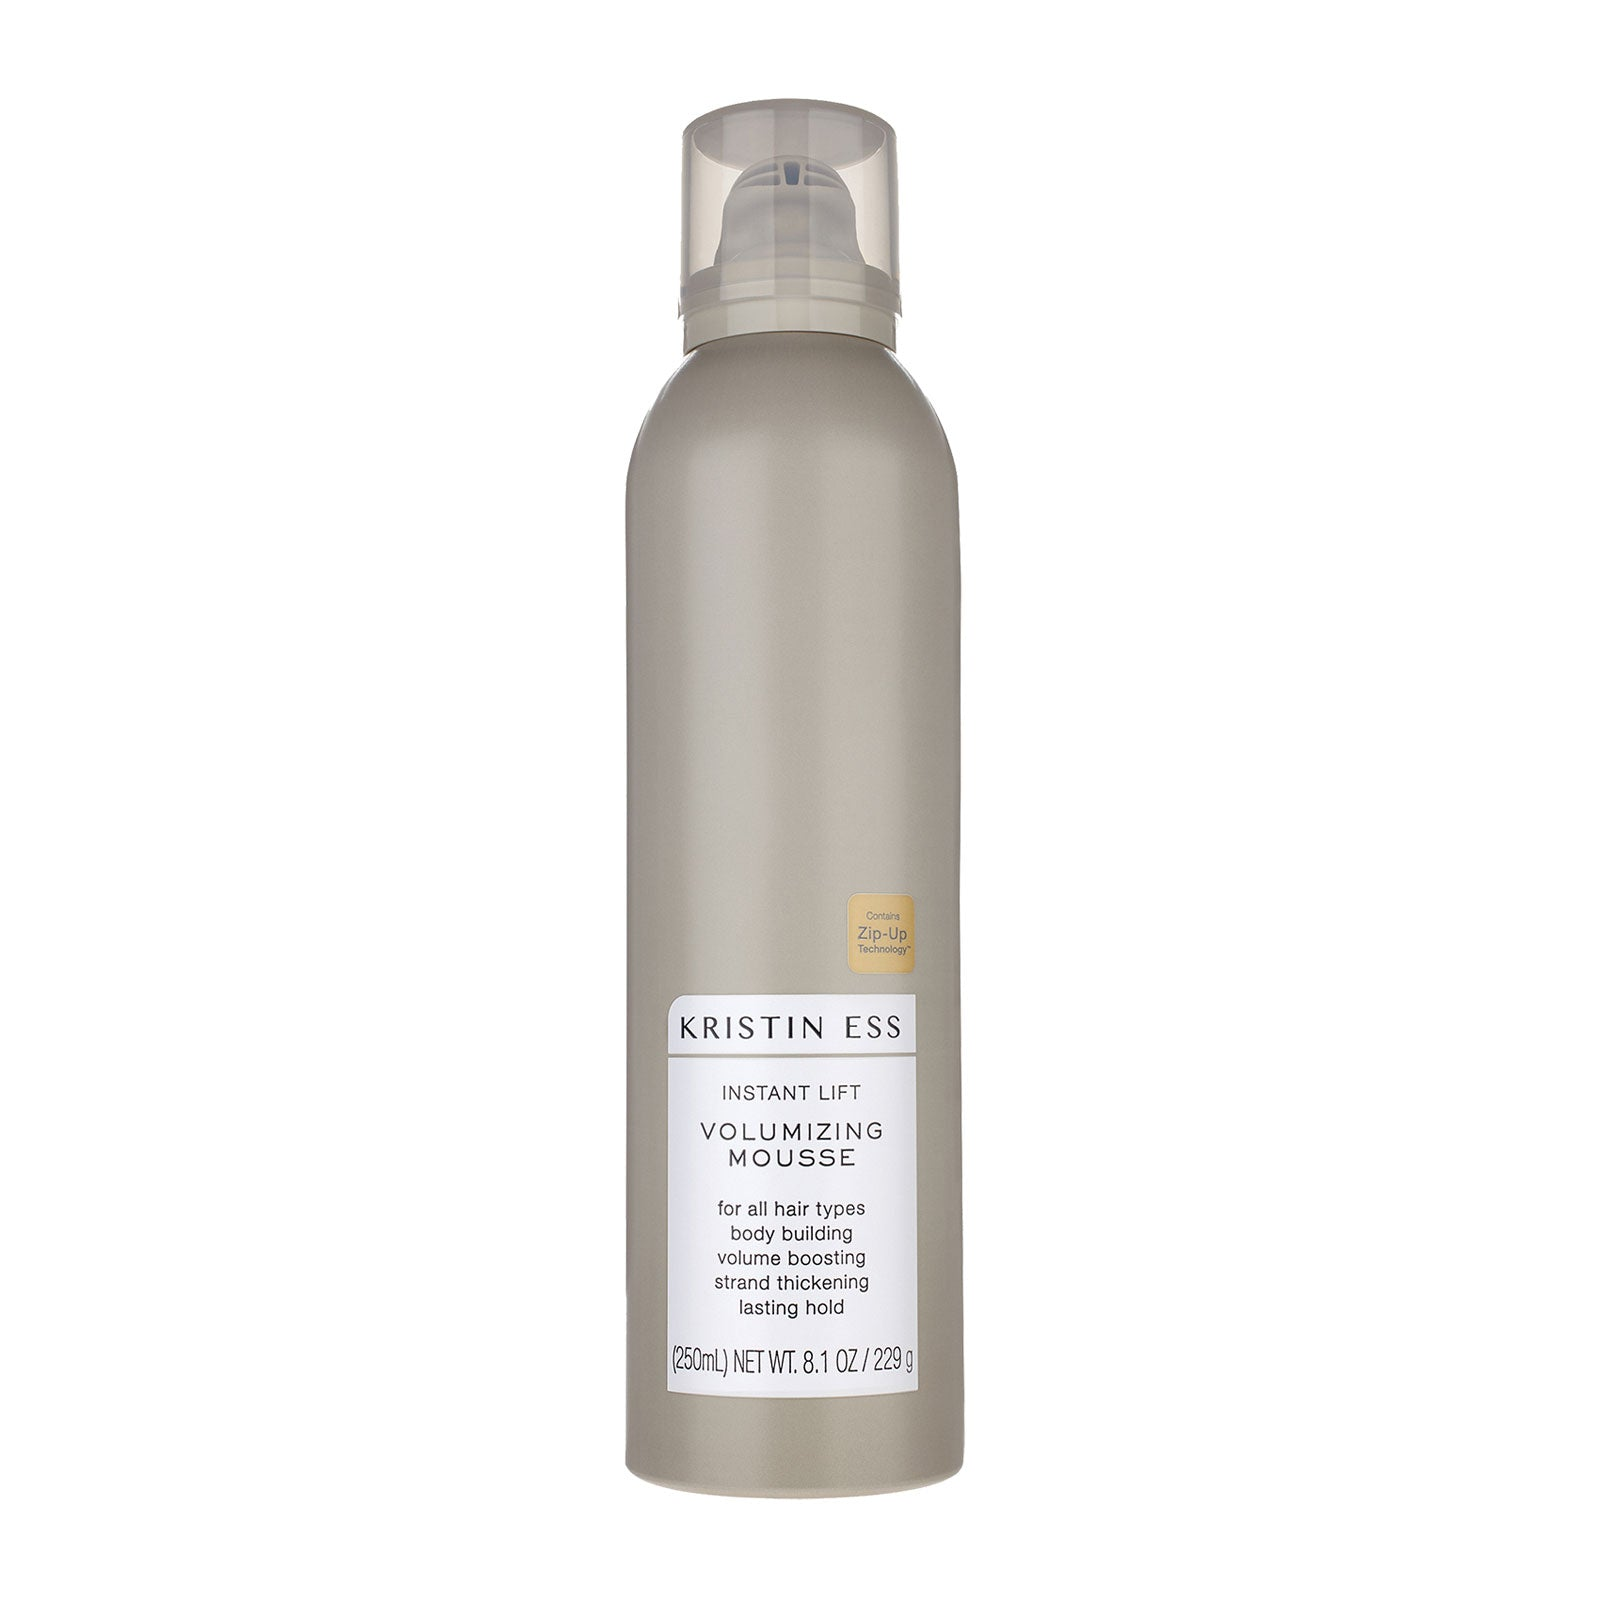 Kristin Ess Hair Instant Lift Volumizing Mousse 229g